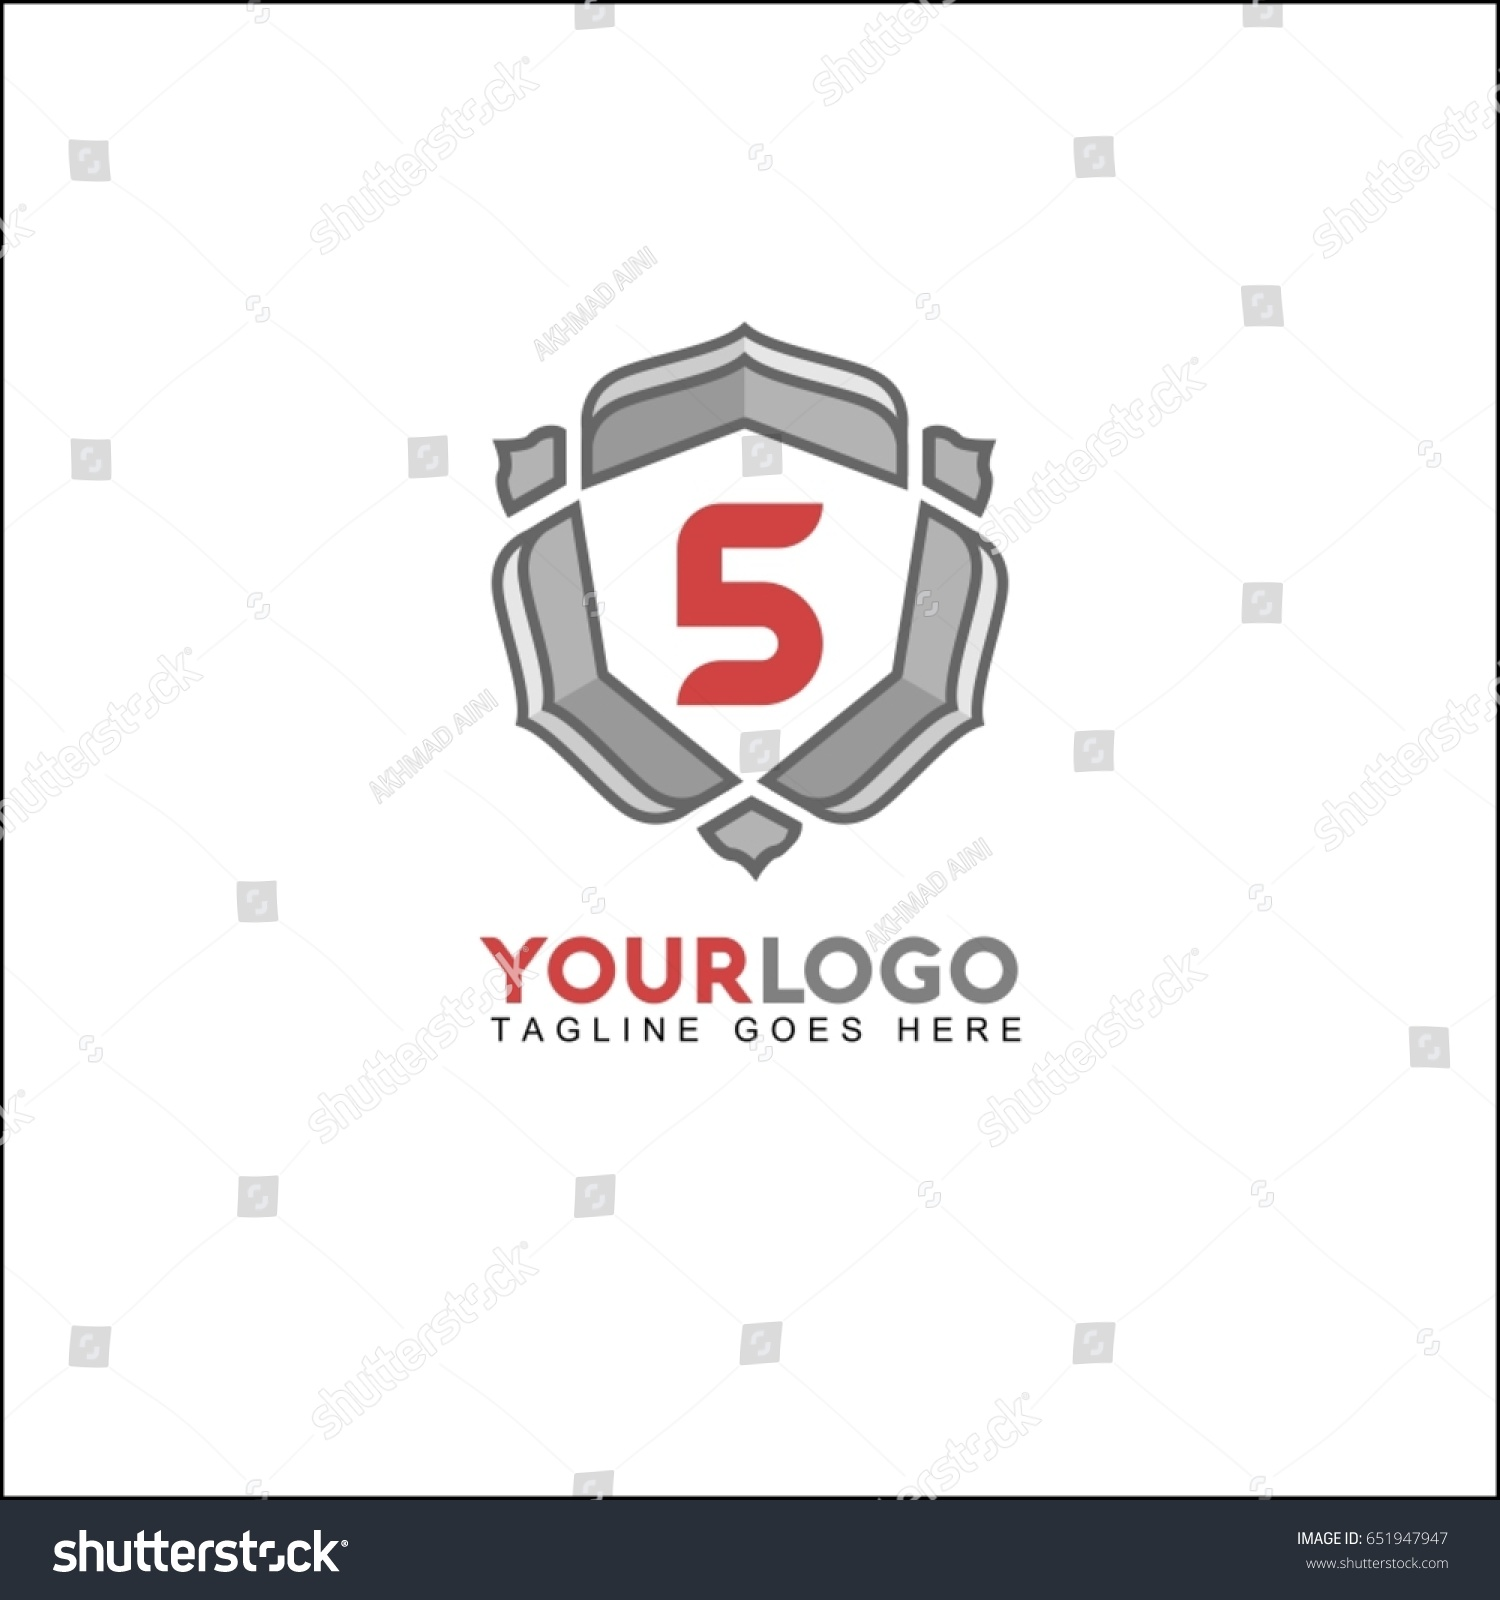 5 Letter Identity Design Luxury Logo Template In Vector For Restaurant Royalty Boutique